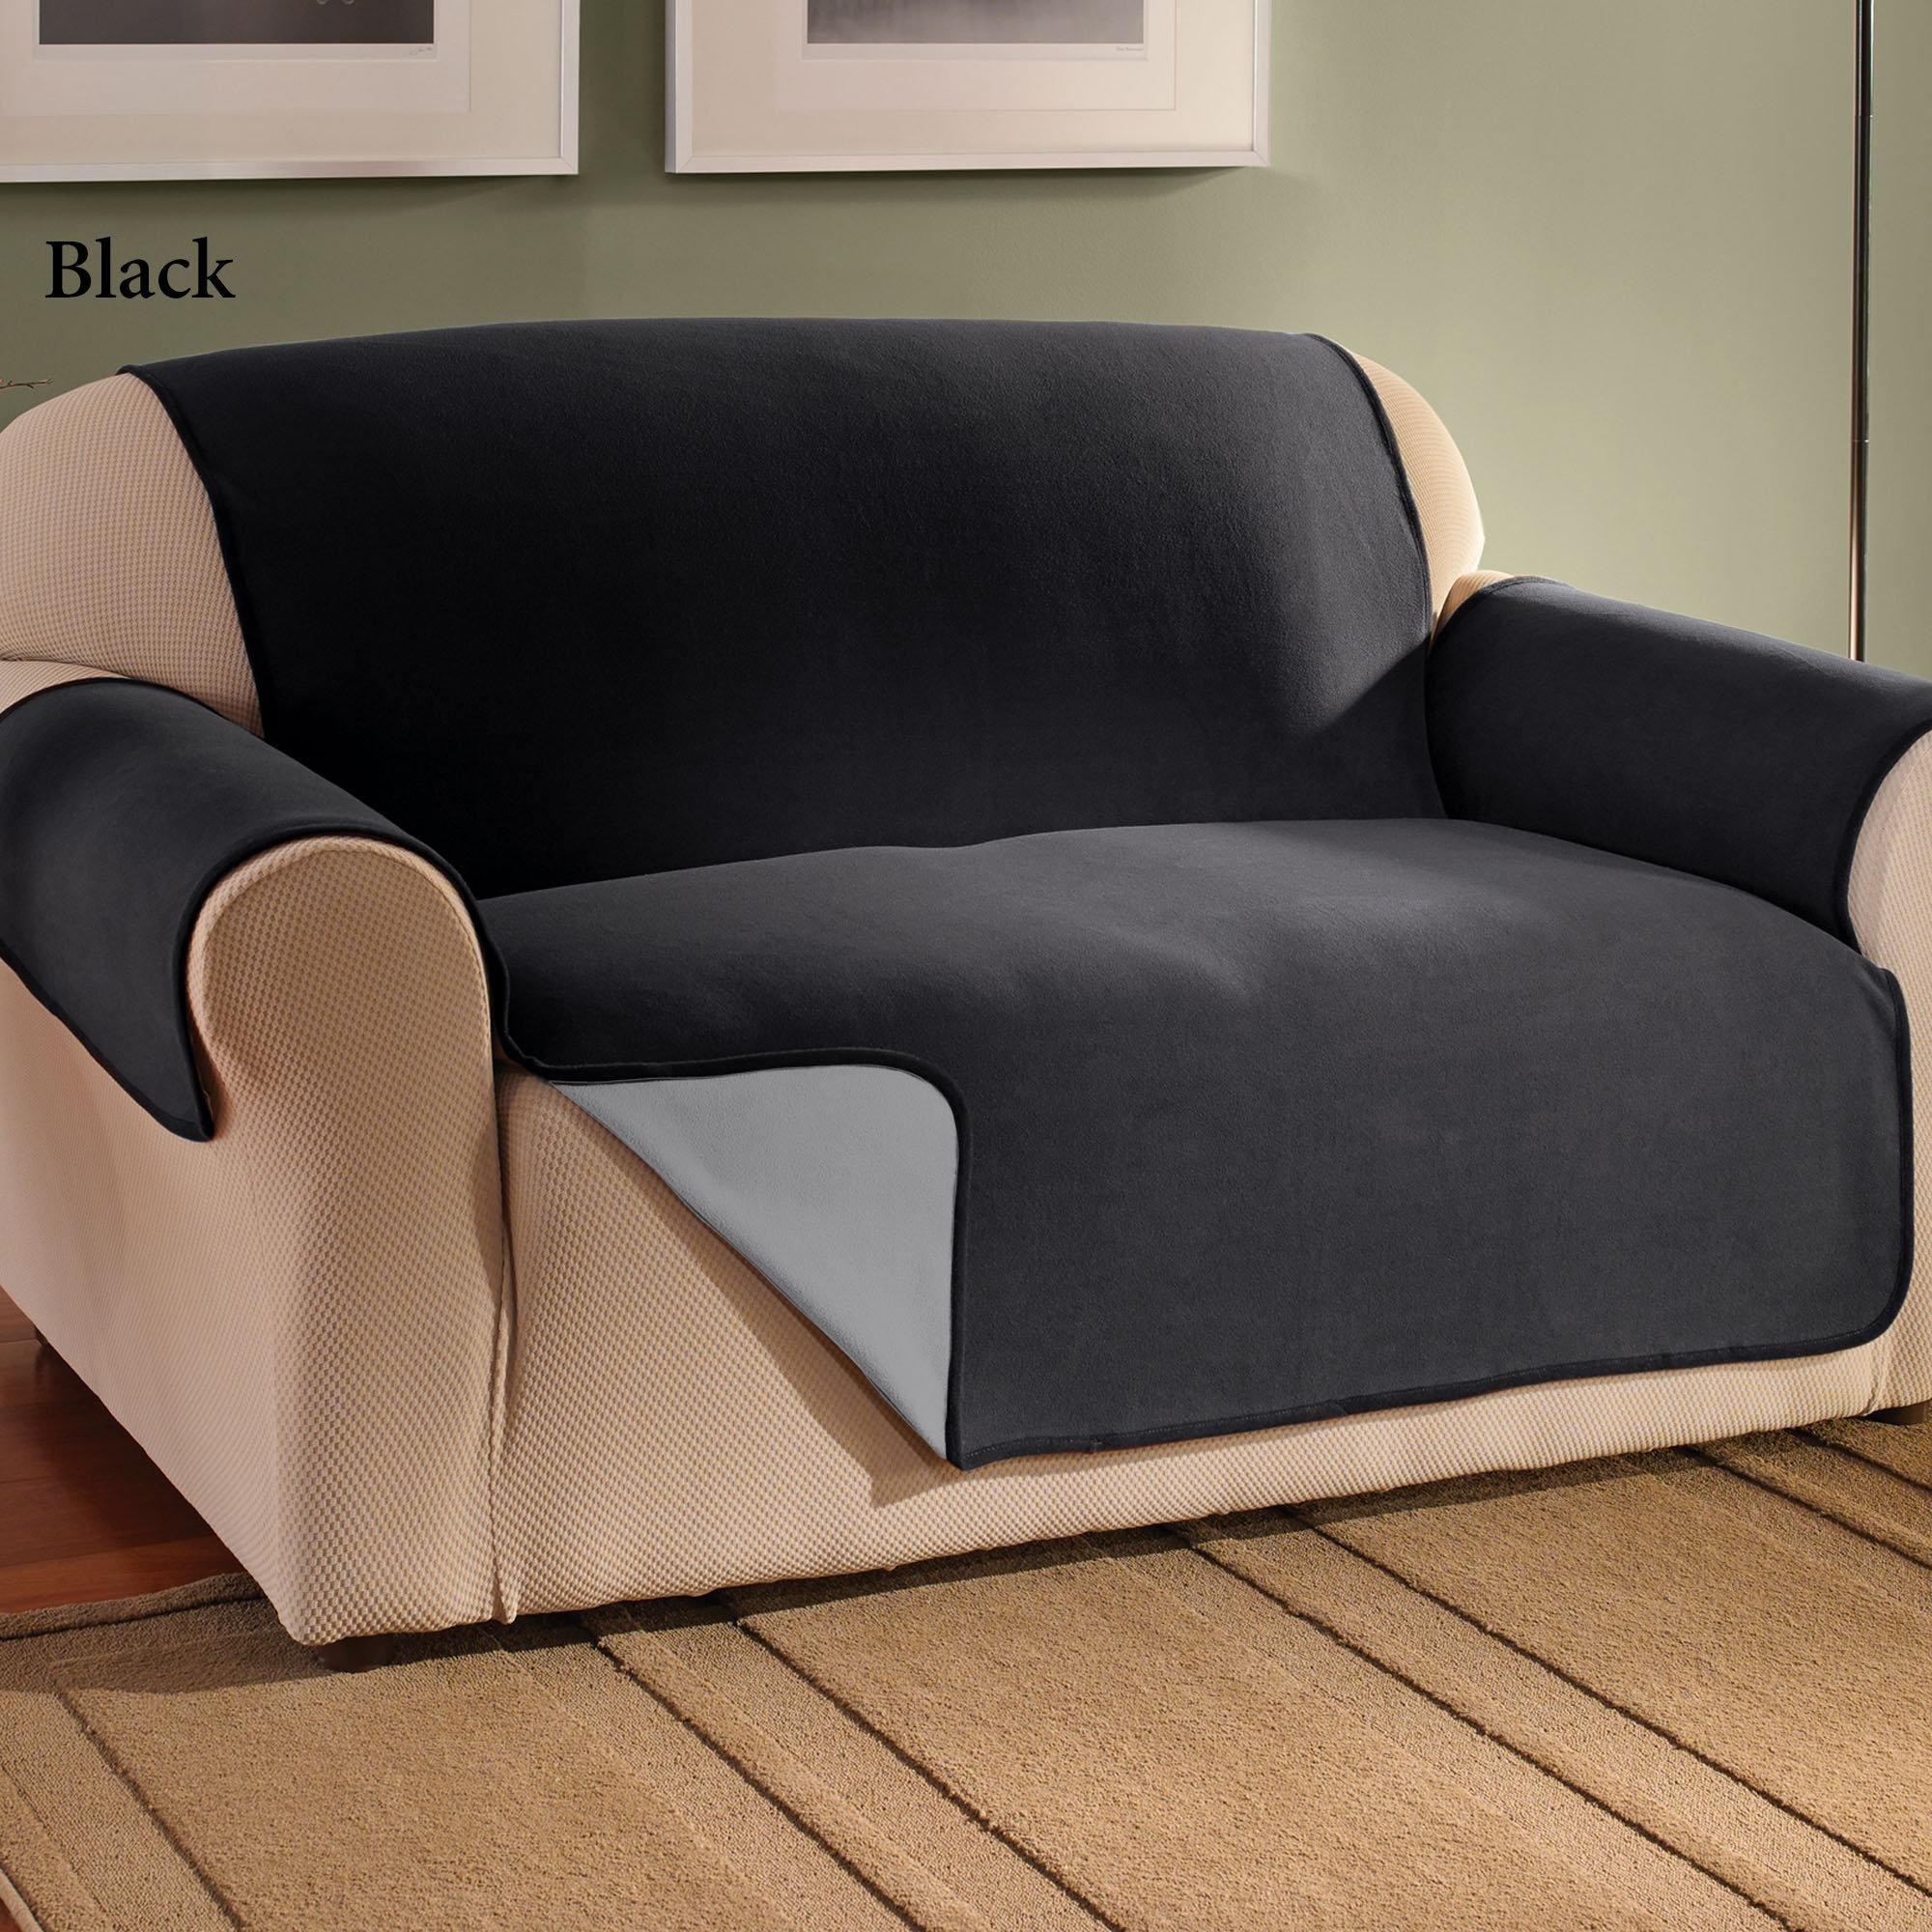 Sofas : Fabulous Sectional Couch Slipcovers Leather Armchair For Slipcover For Leather Sectional Sofas (View 8 of 21)